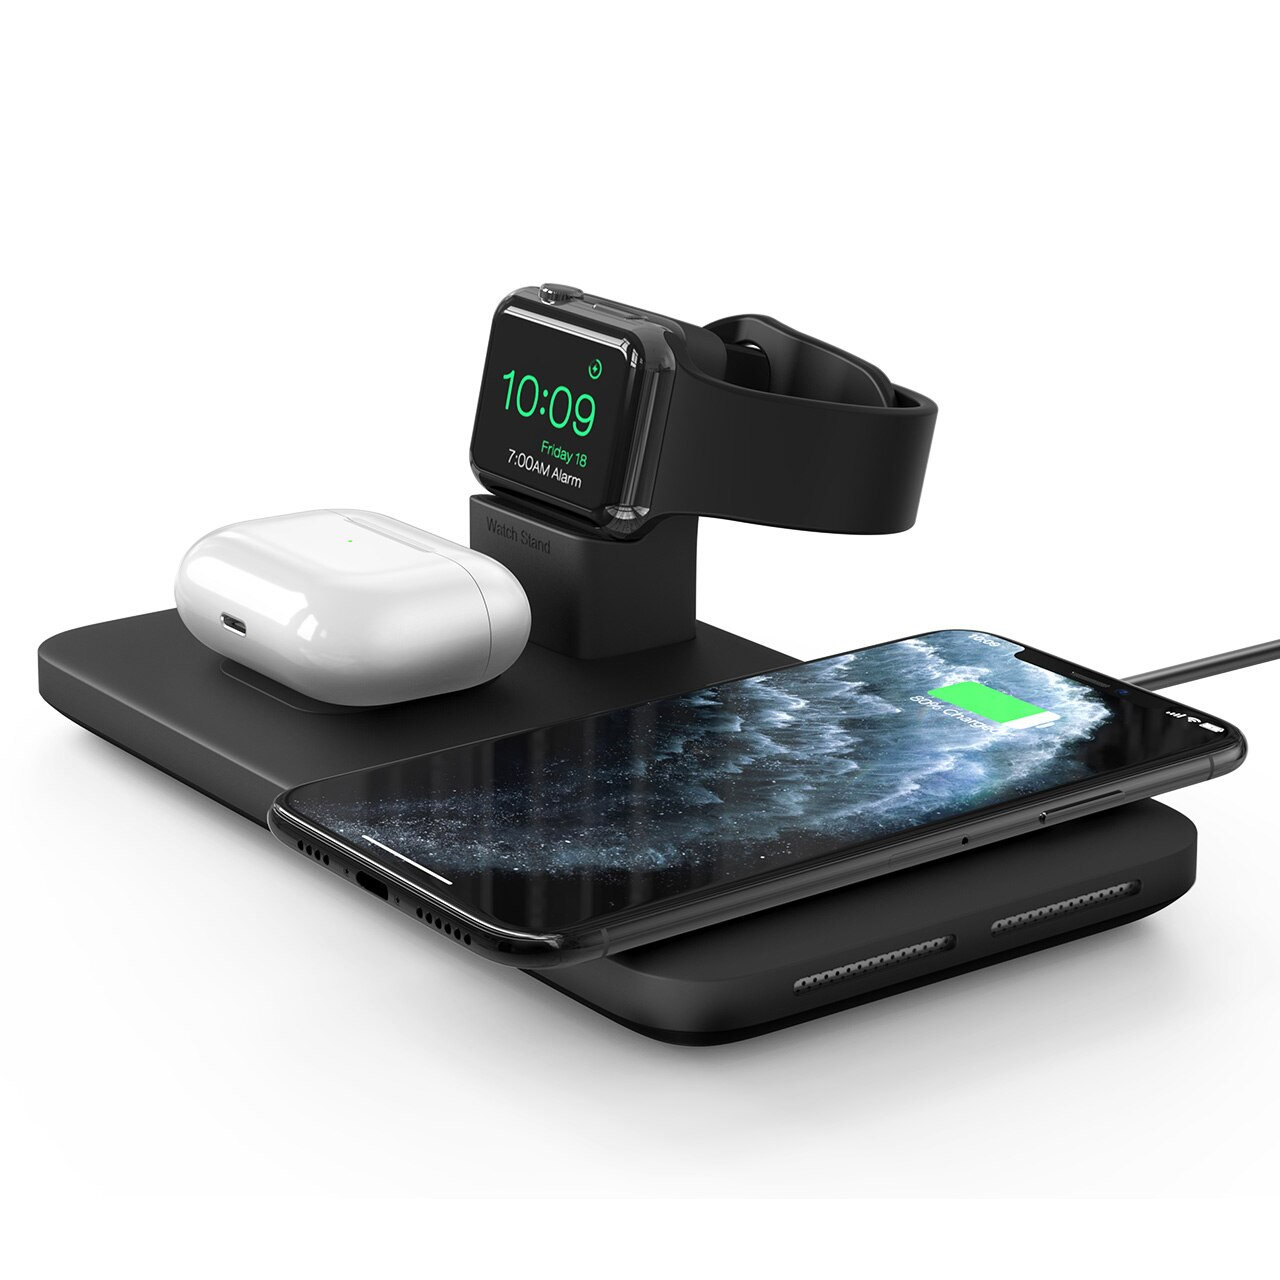 H0ceeed288ec54fa9a46f85c74cb3e552W - Seneo PA202 Wireless Charger 3 in 1 for iPhone 12 11 Wireless Charging Pad for AirPods Pro 2 Charging Dock for iWatch 5 4 3 2